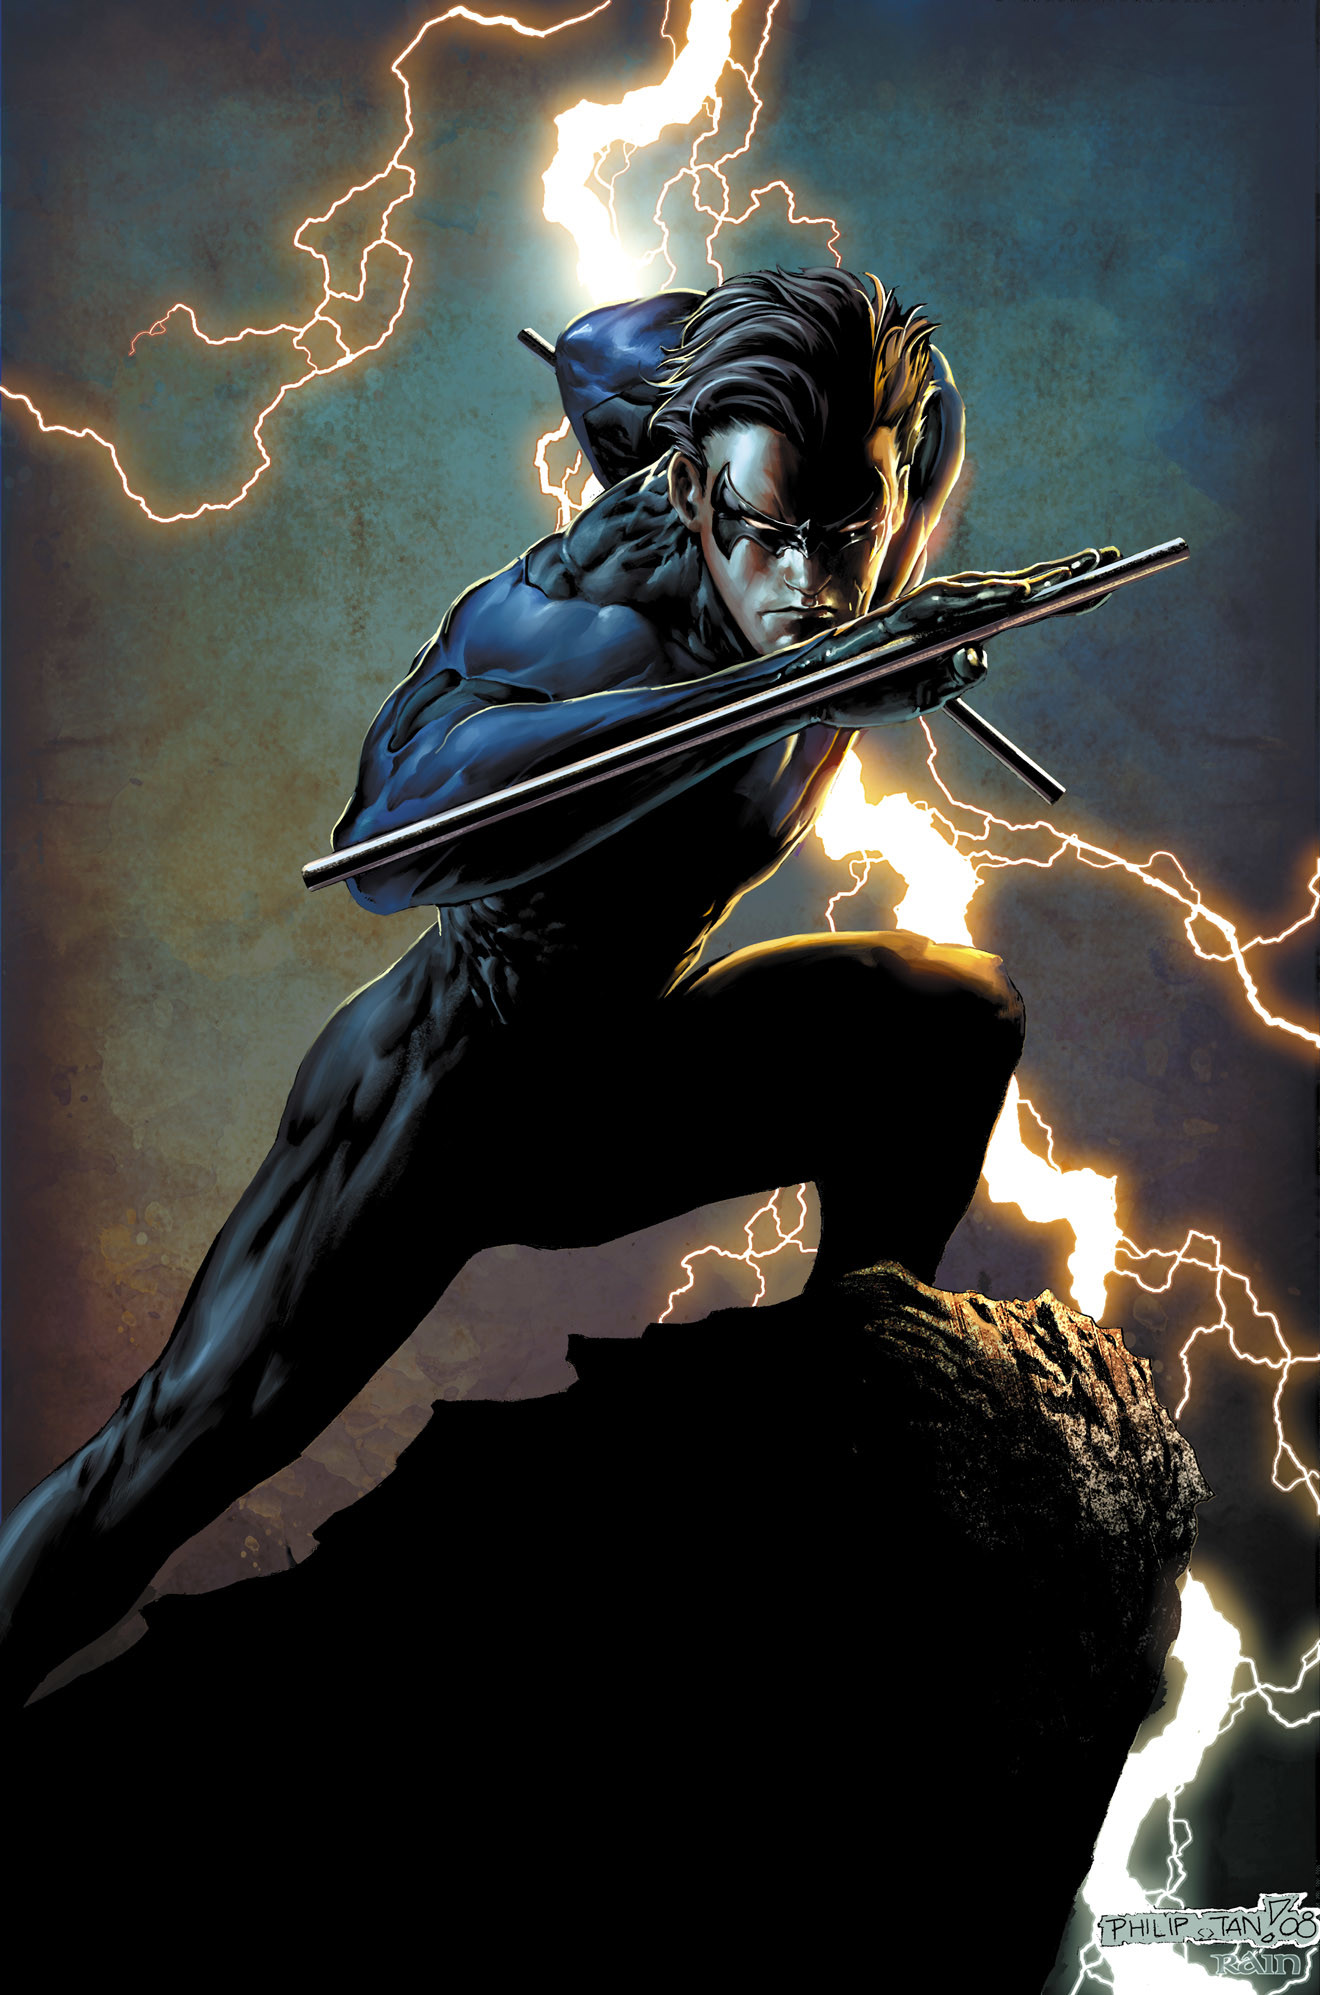 Res: 1320x1995, TheOfficialJLA images NIGHTWING!!!! HD wallpaper and background photos